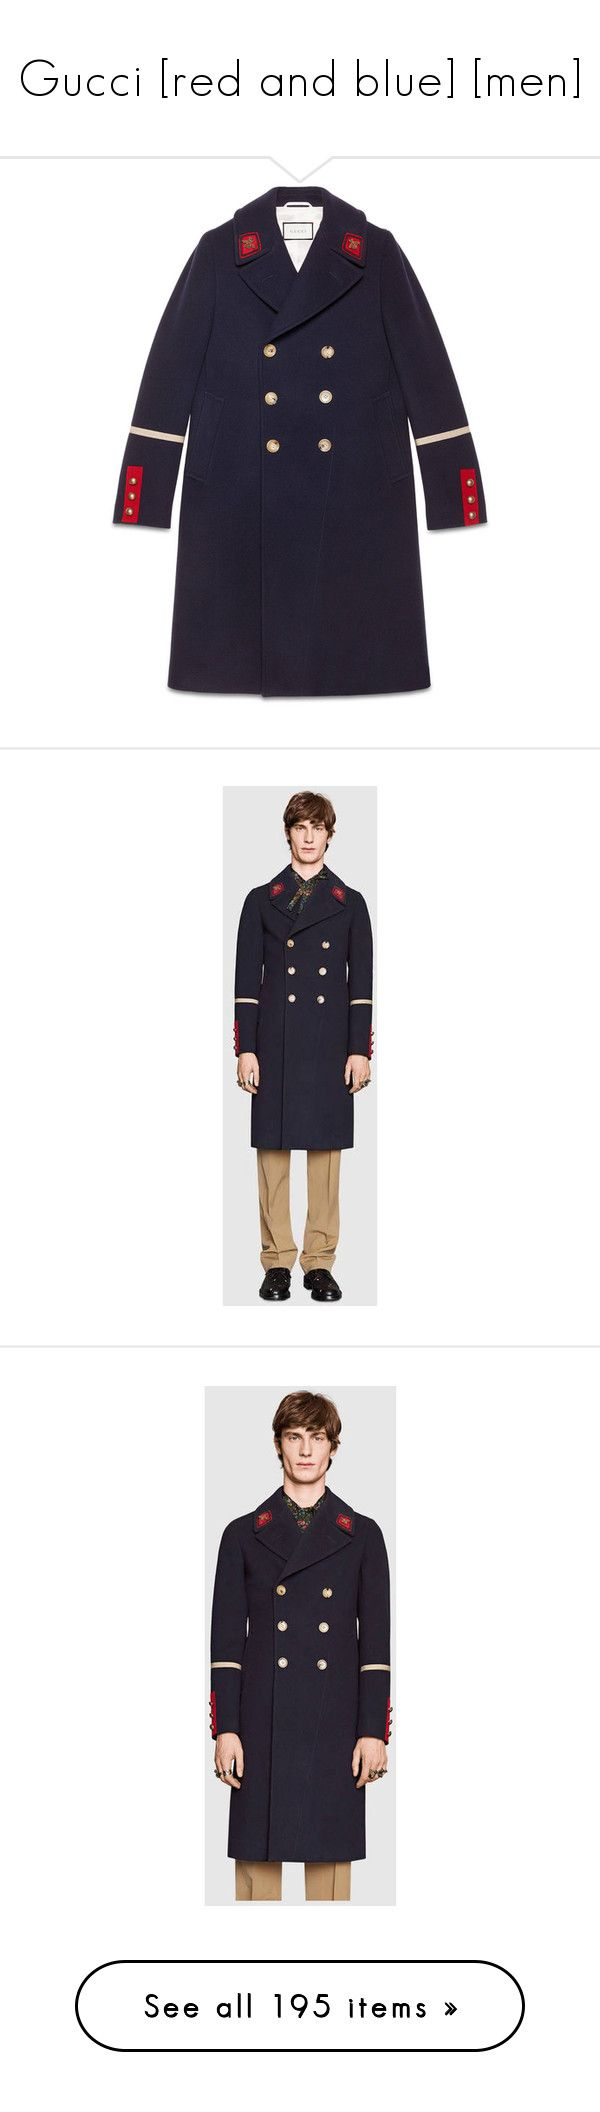 """""""Gucci [red and blue] [men]"""" by neneumi ❤ liked on Polyvore featuring men's fashion, men's clothing, men's outerwear, men's coats, gucci, outerwear, indigo, mens wool outerwear, mens cashmere coat and mens belted trench coat"""